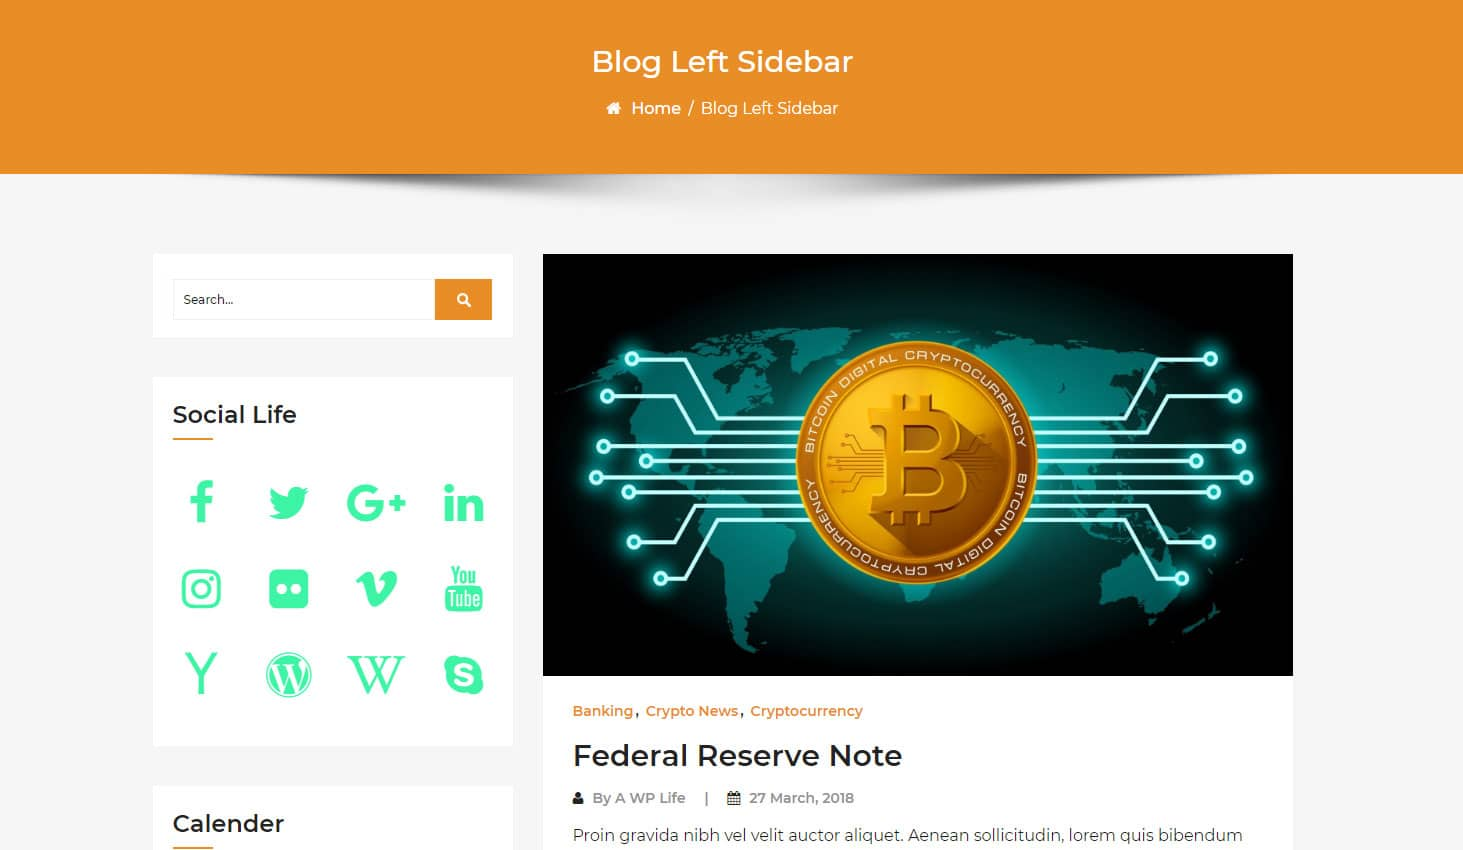 Crypto Premium WordPress Theme For Cryptocurrency Business and Blog Websites - A WP Life - Blog Left Sidebar Template